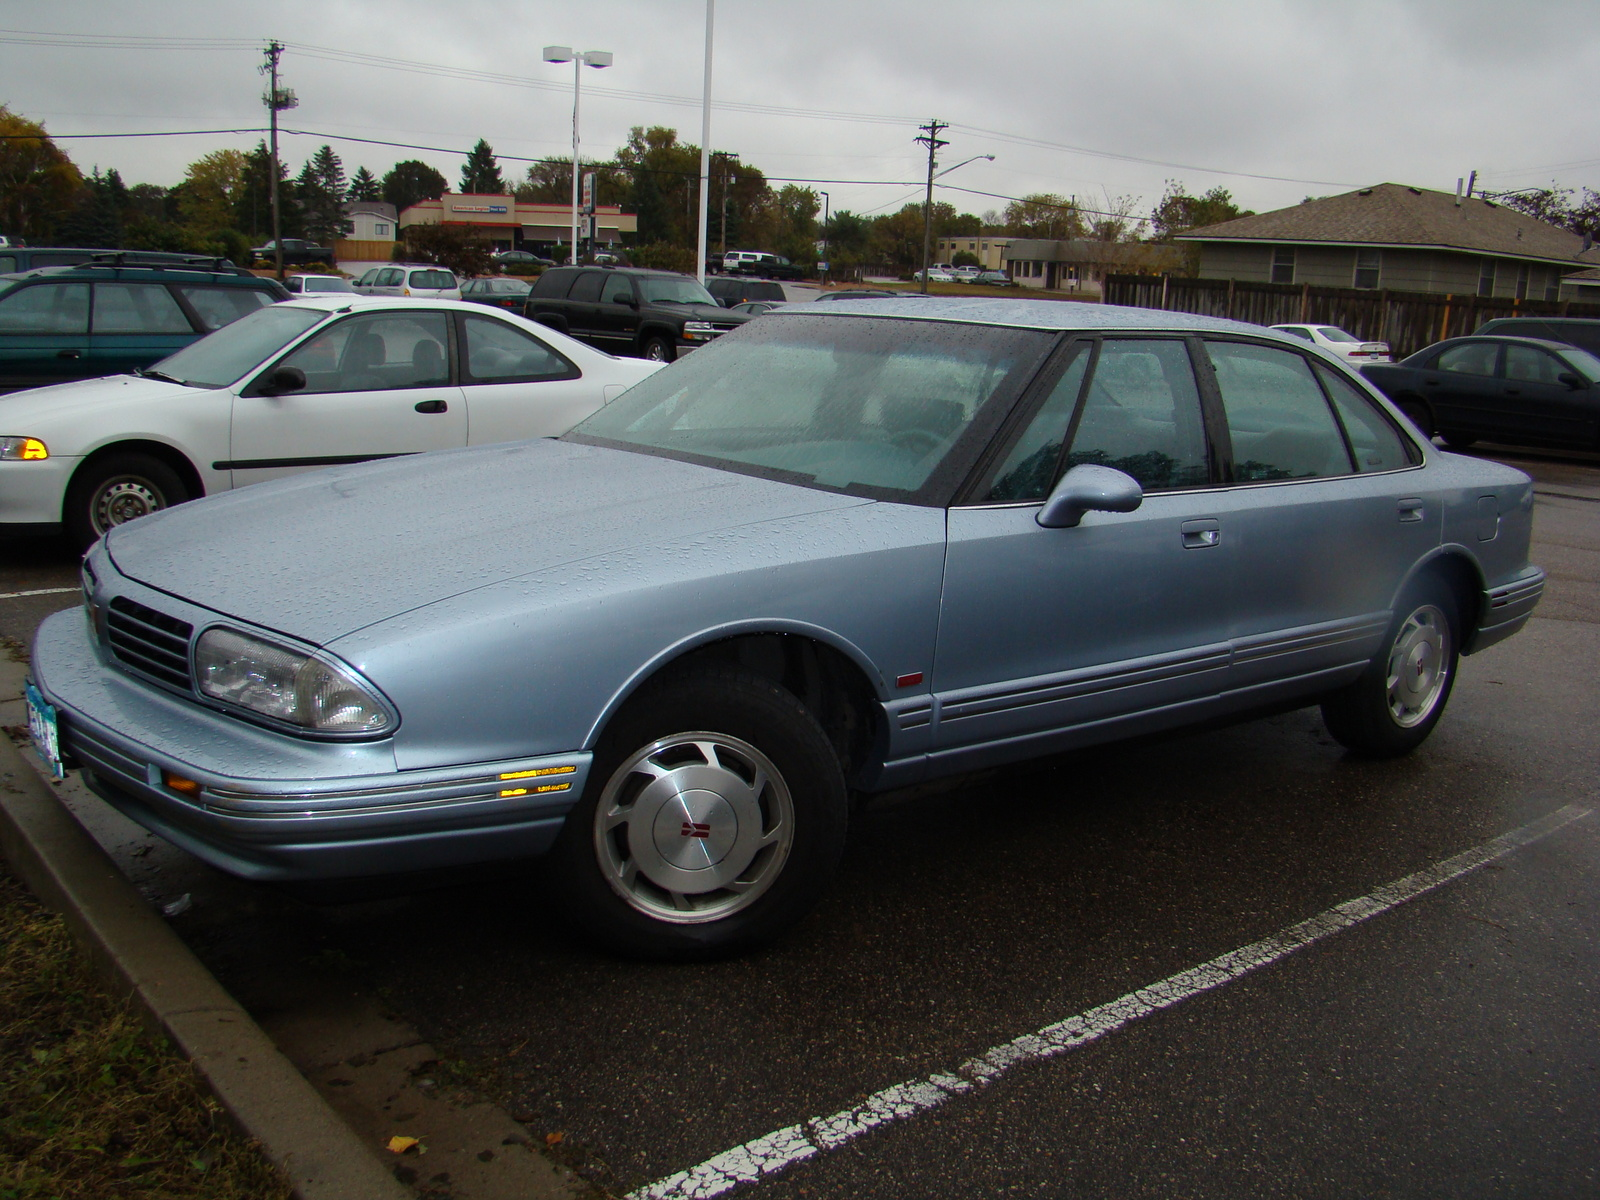 1994 Oldsmobile Eighty-Eight Royale 4 Dr LSS Sedan picture, exterior